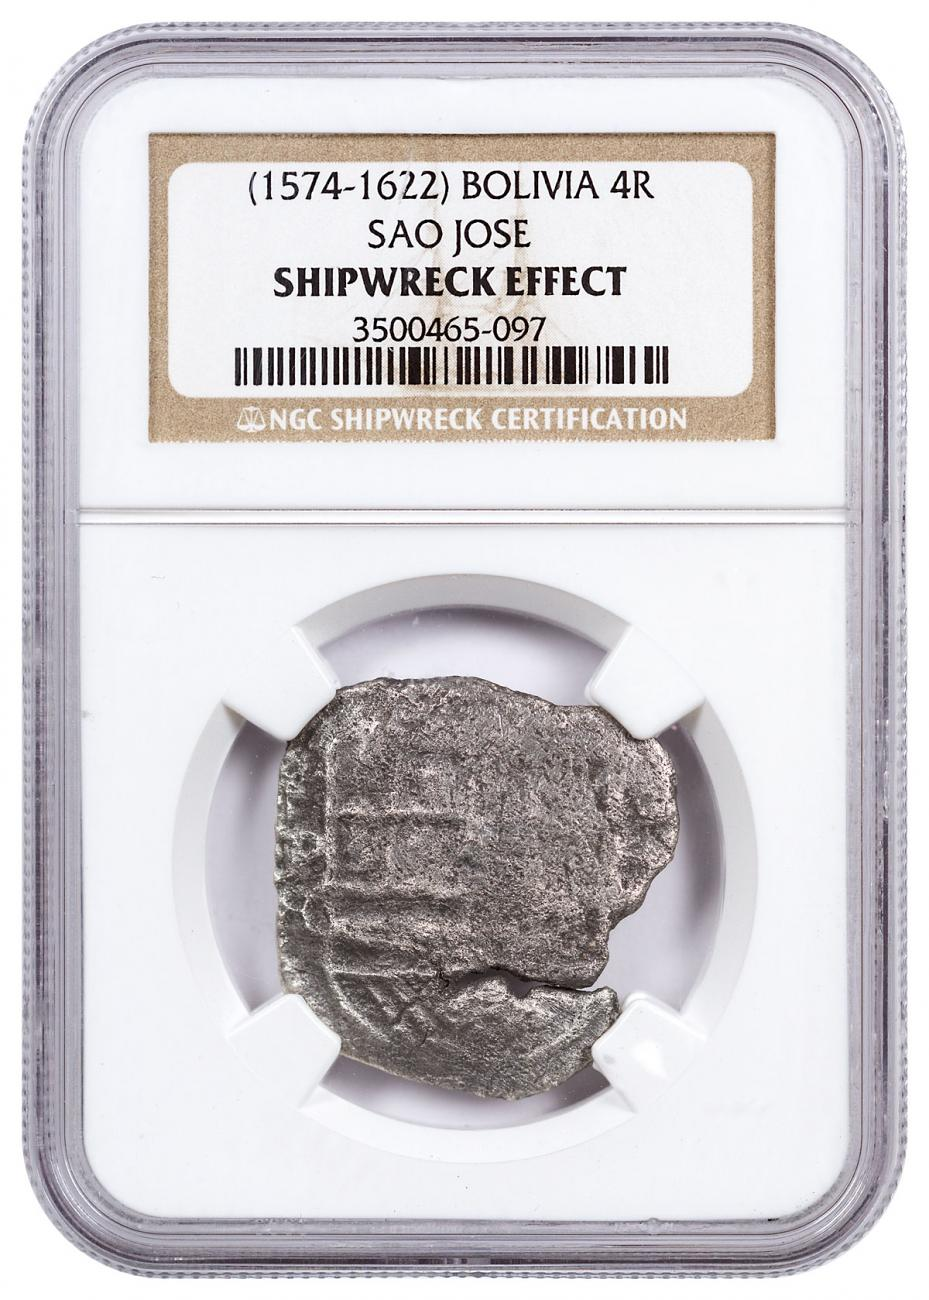 1574-1622 Bolivia Silver 4 Reales NGC Shipwreck Effect